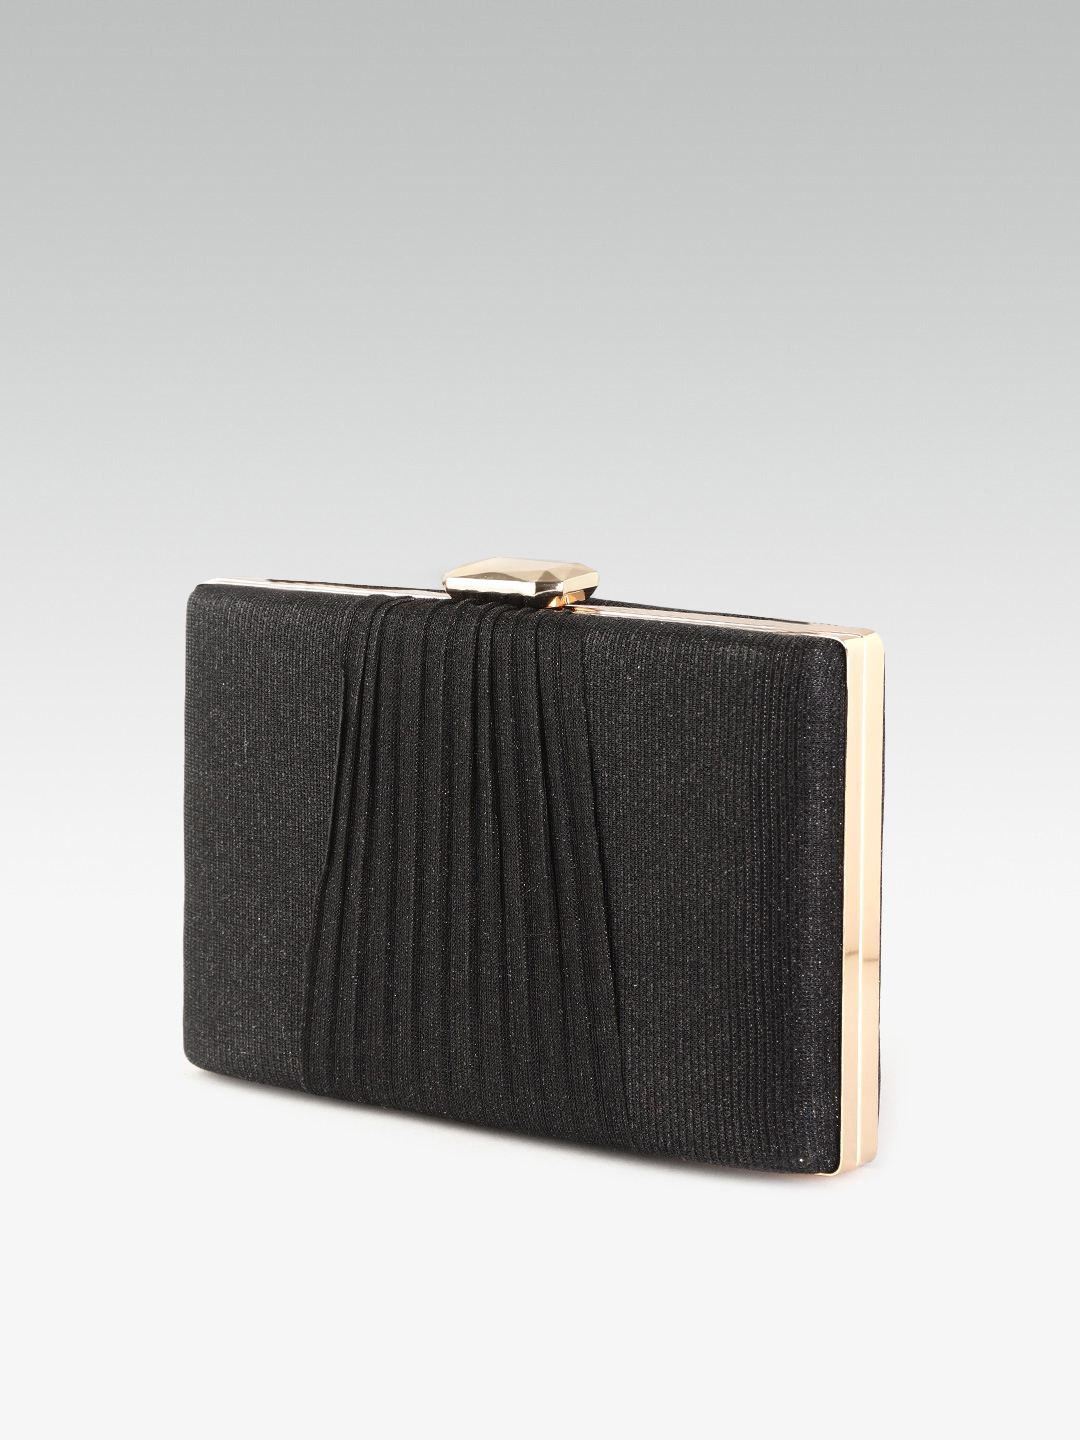 Clutches-Black Is Beautiful Box Clutch2